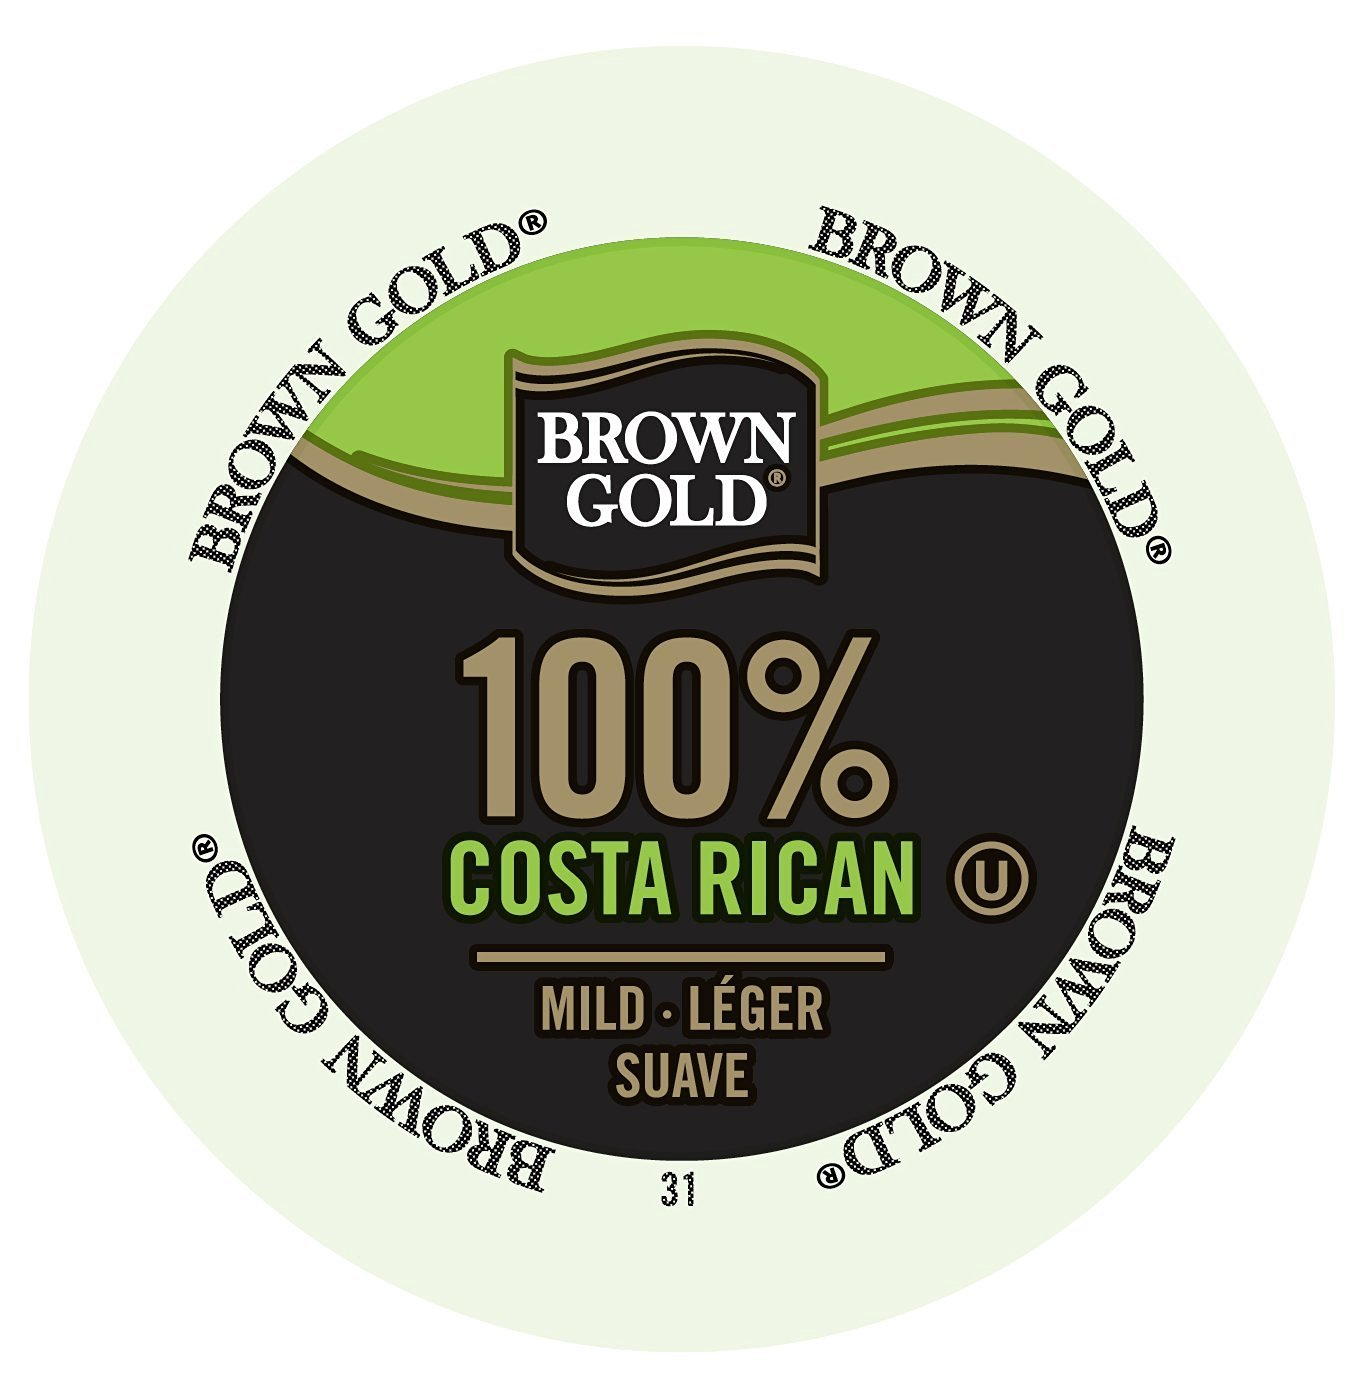 Brown Gold Coffee 100% Costa Rican, RealCup portion pack for Keurig K-Cup Brewers, 96 Count